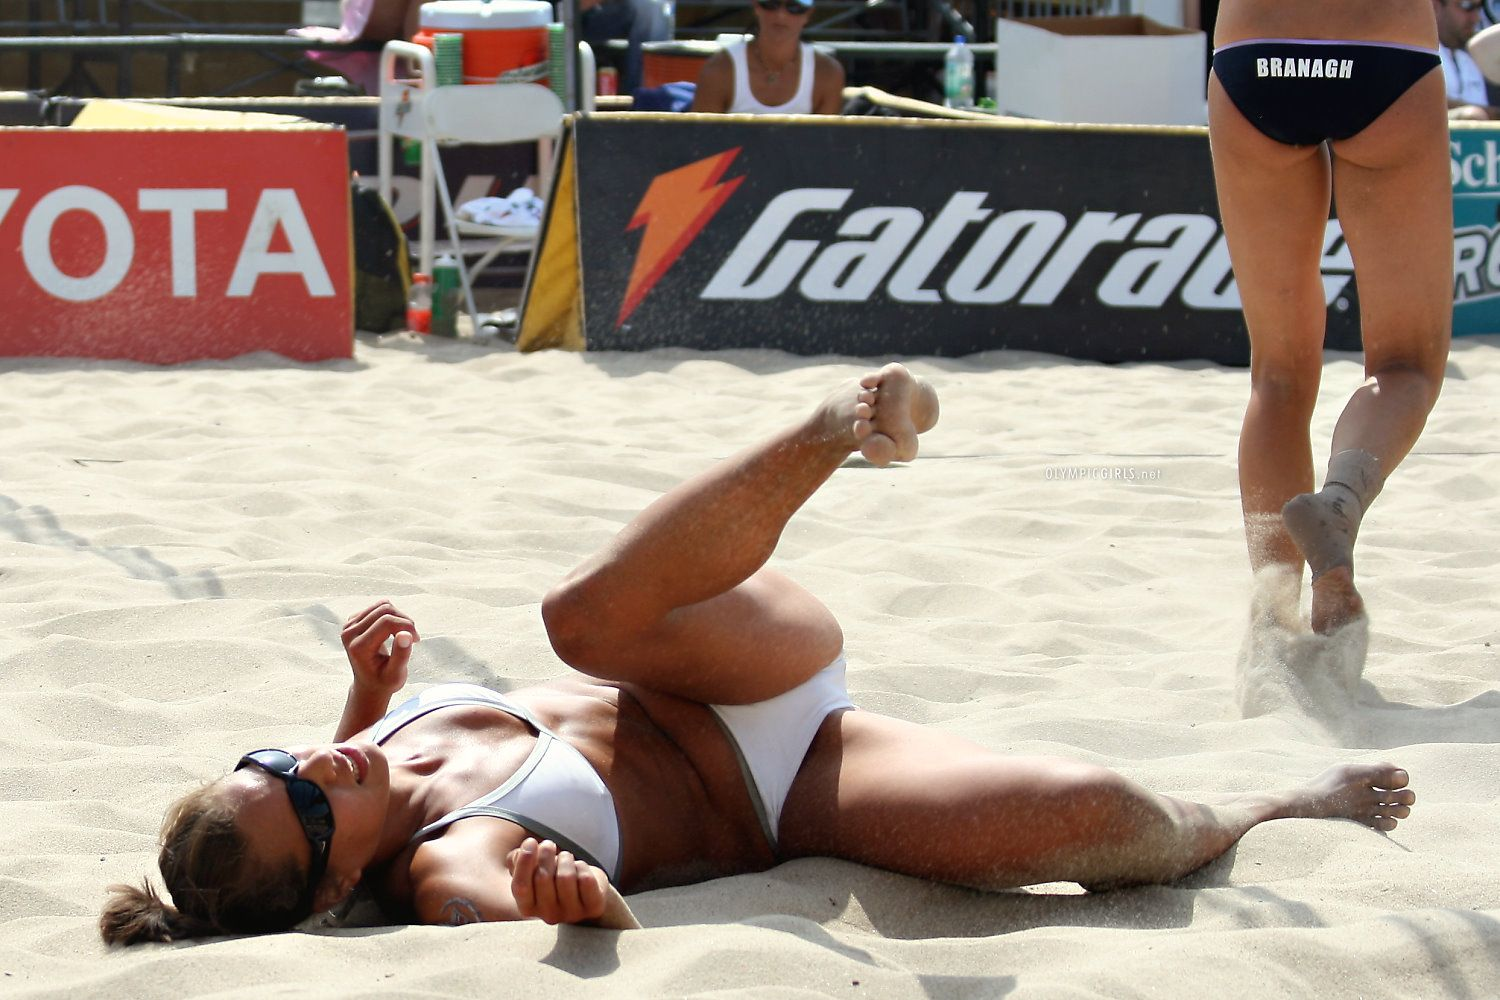 Hottest Beach Volleyball Moments We Could Find